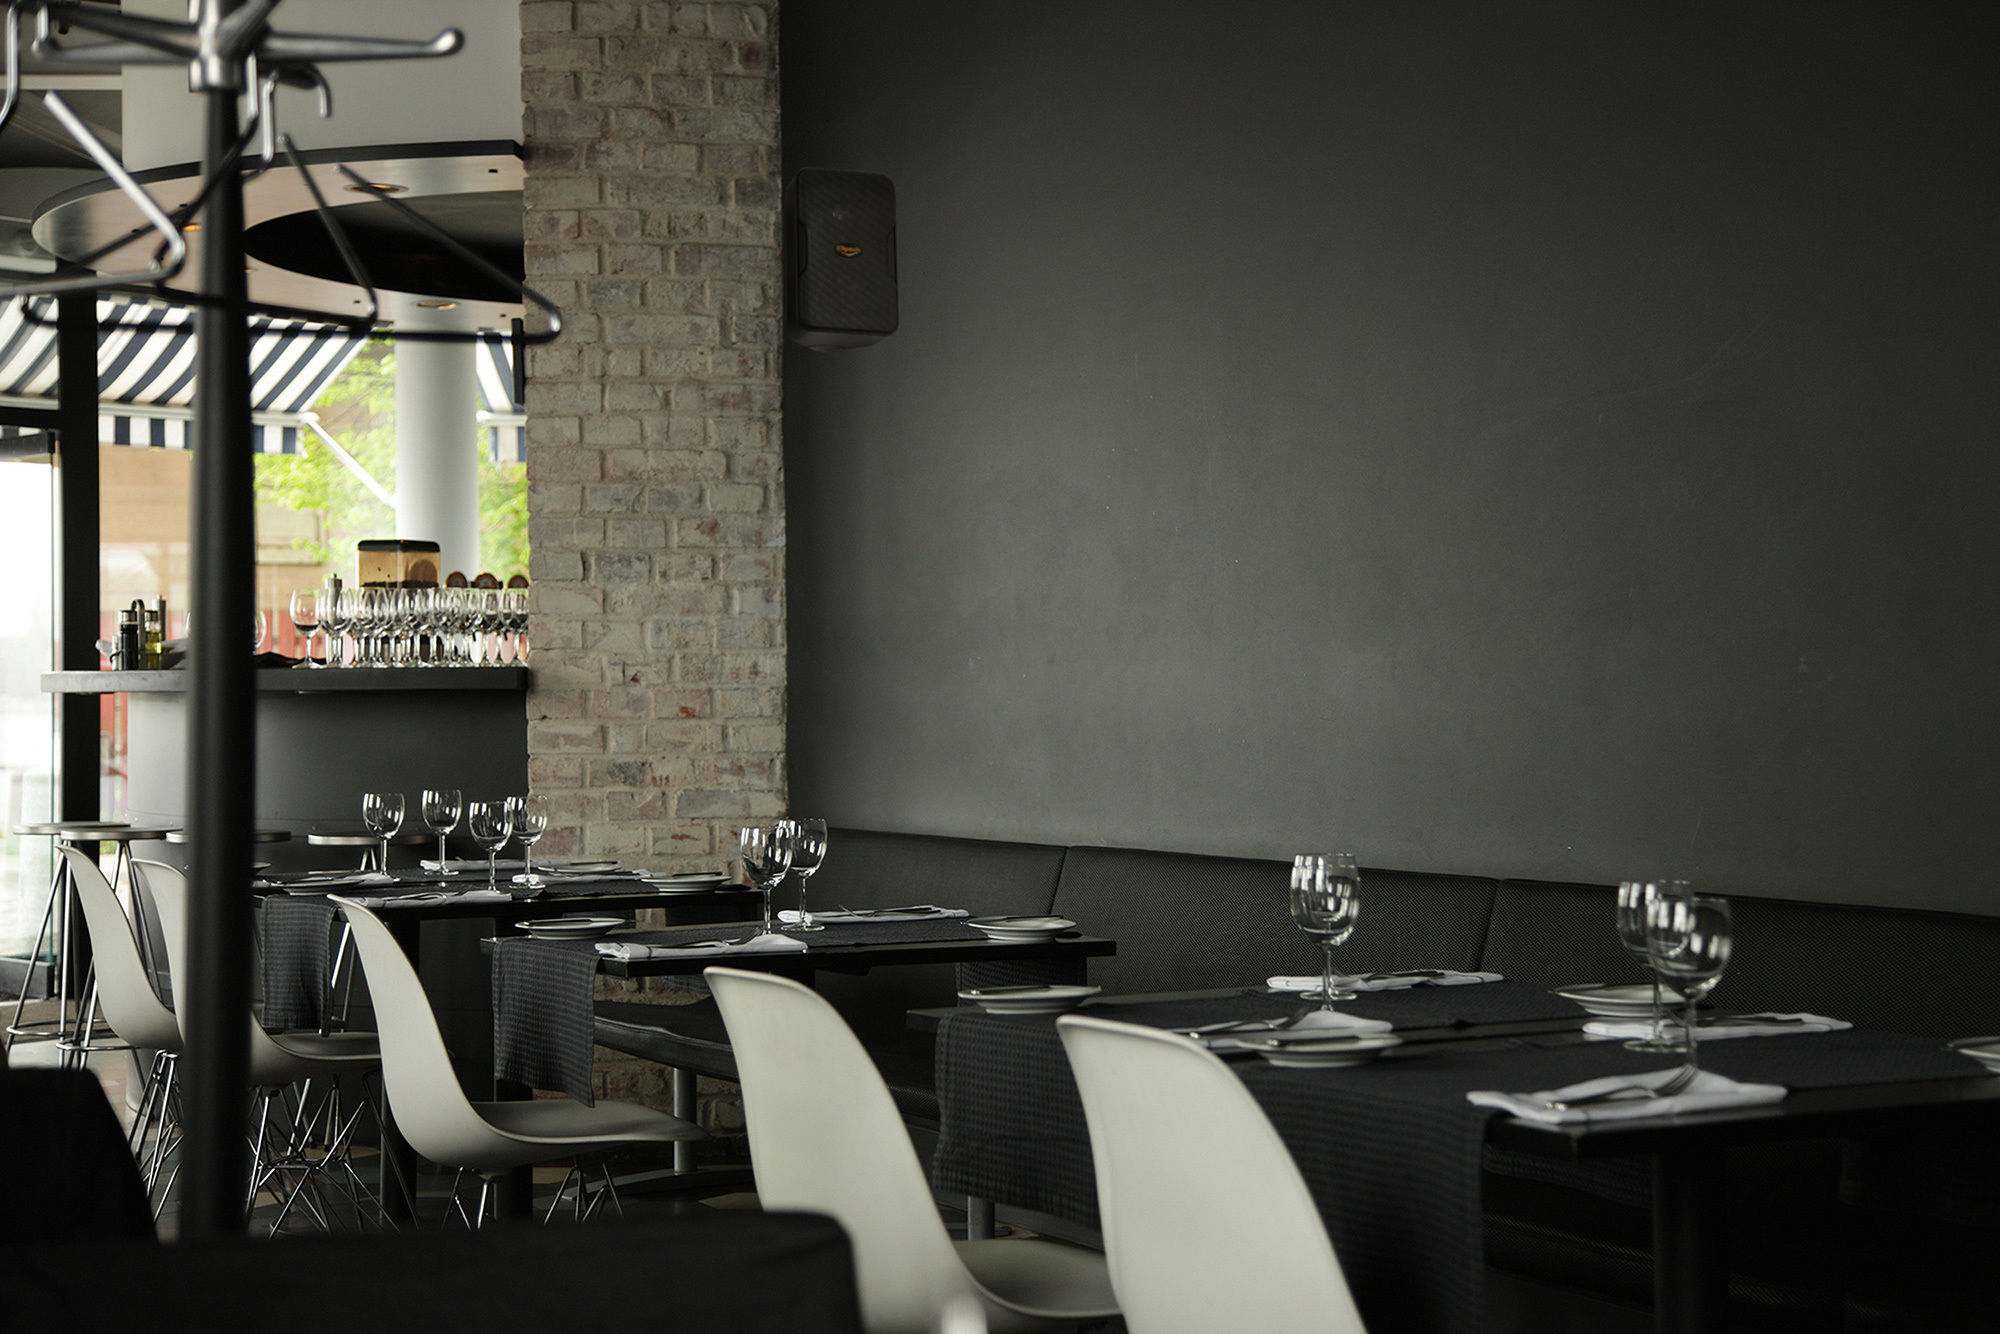 Restaurant with Klipsch Custom Installation speaker